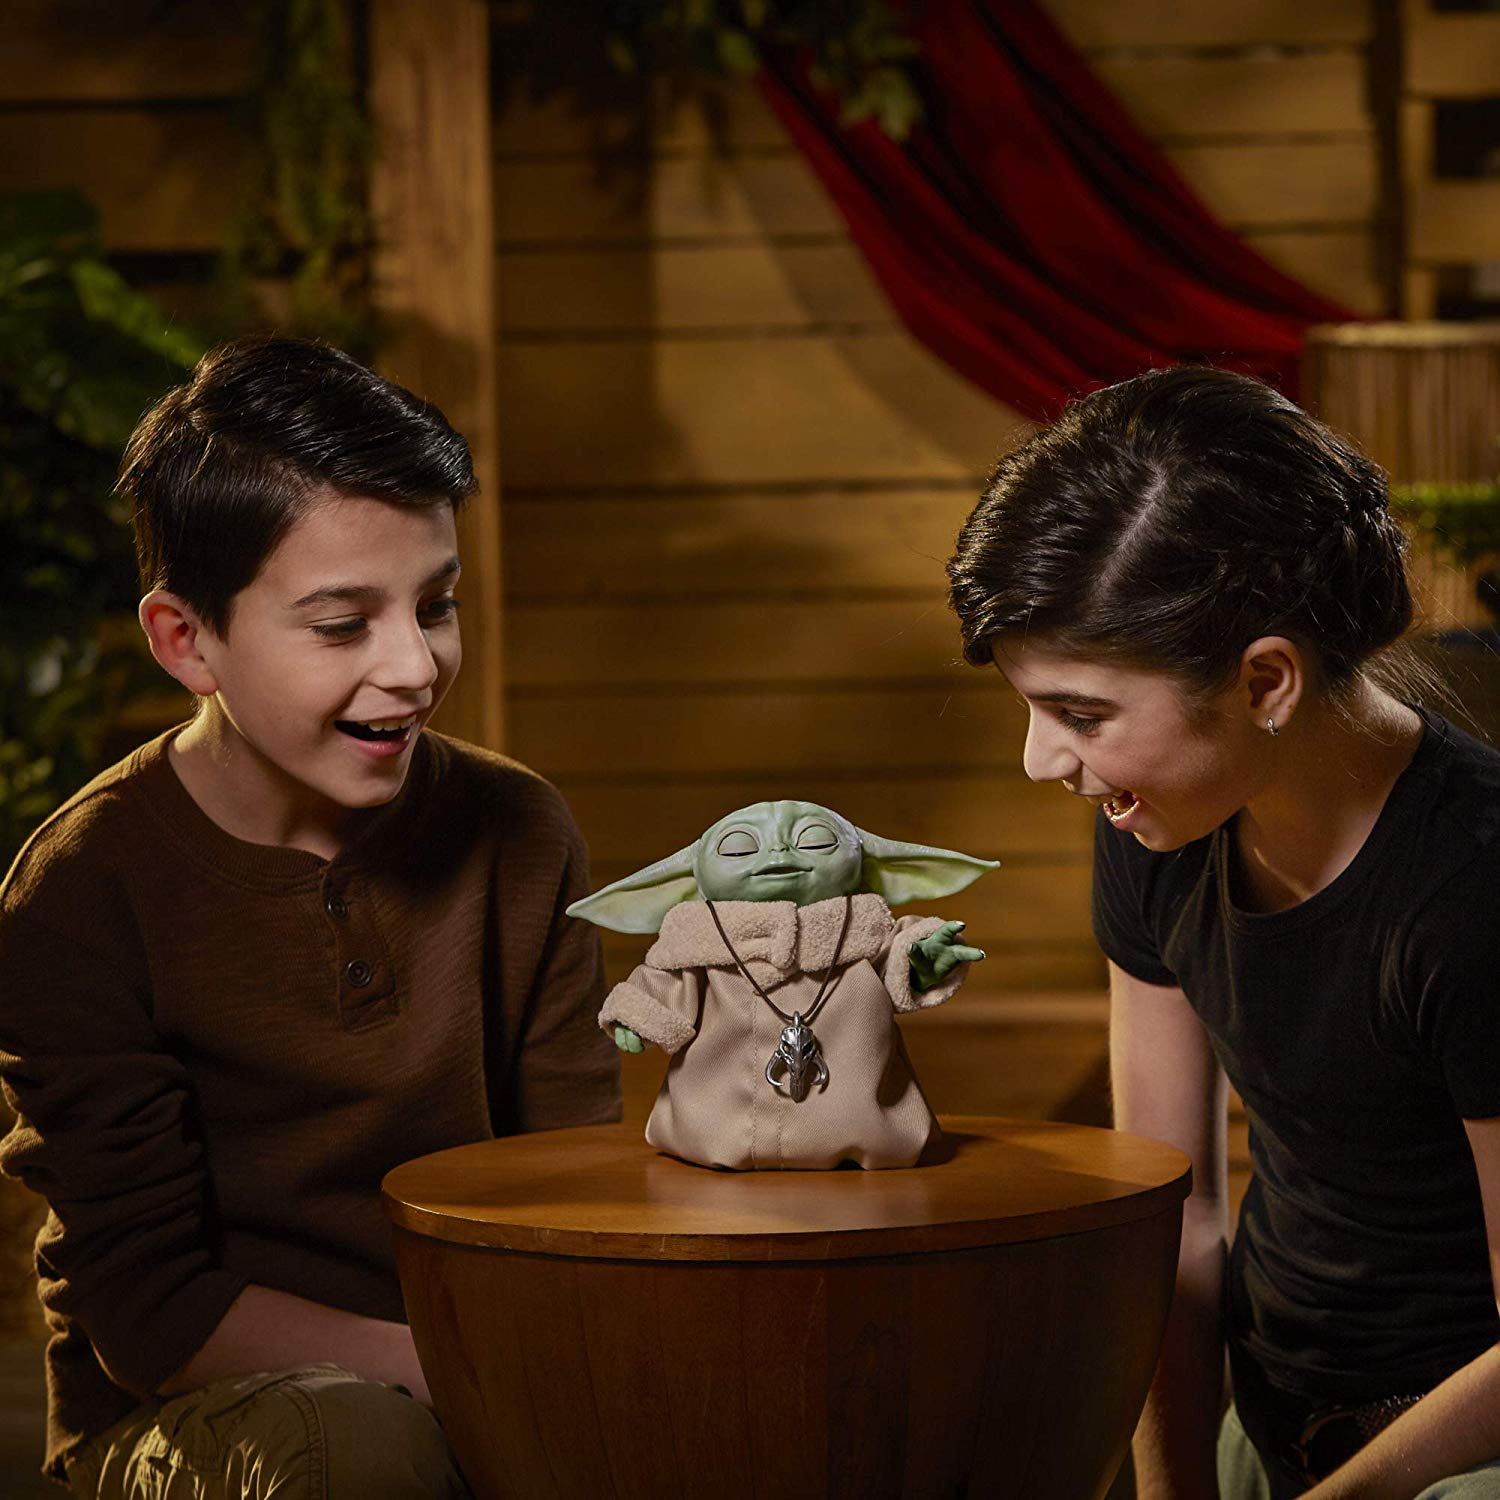 The Child Animatronic Using the Force with kids watching